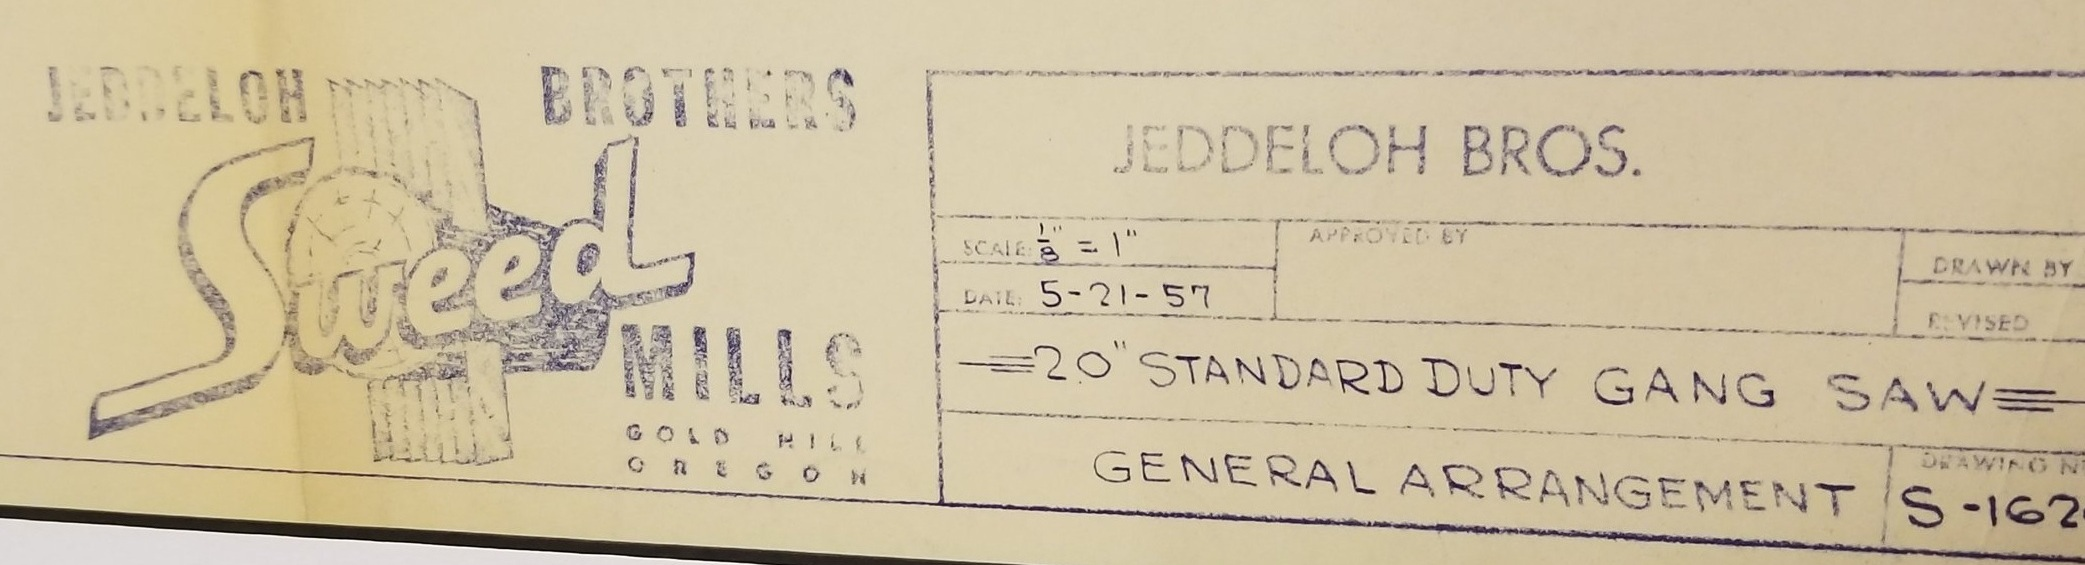 Photo of the original Sweed Mills - Jeddeloh Brothers blueprint from 1957. This blueprint has been preserved and is proudly displayed in the Sweed conference room in Gold Hill, OR, as a reminder of our history.